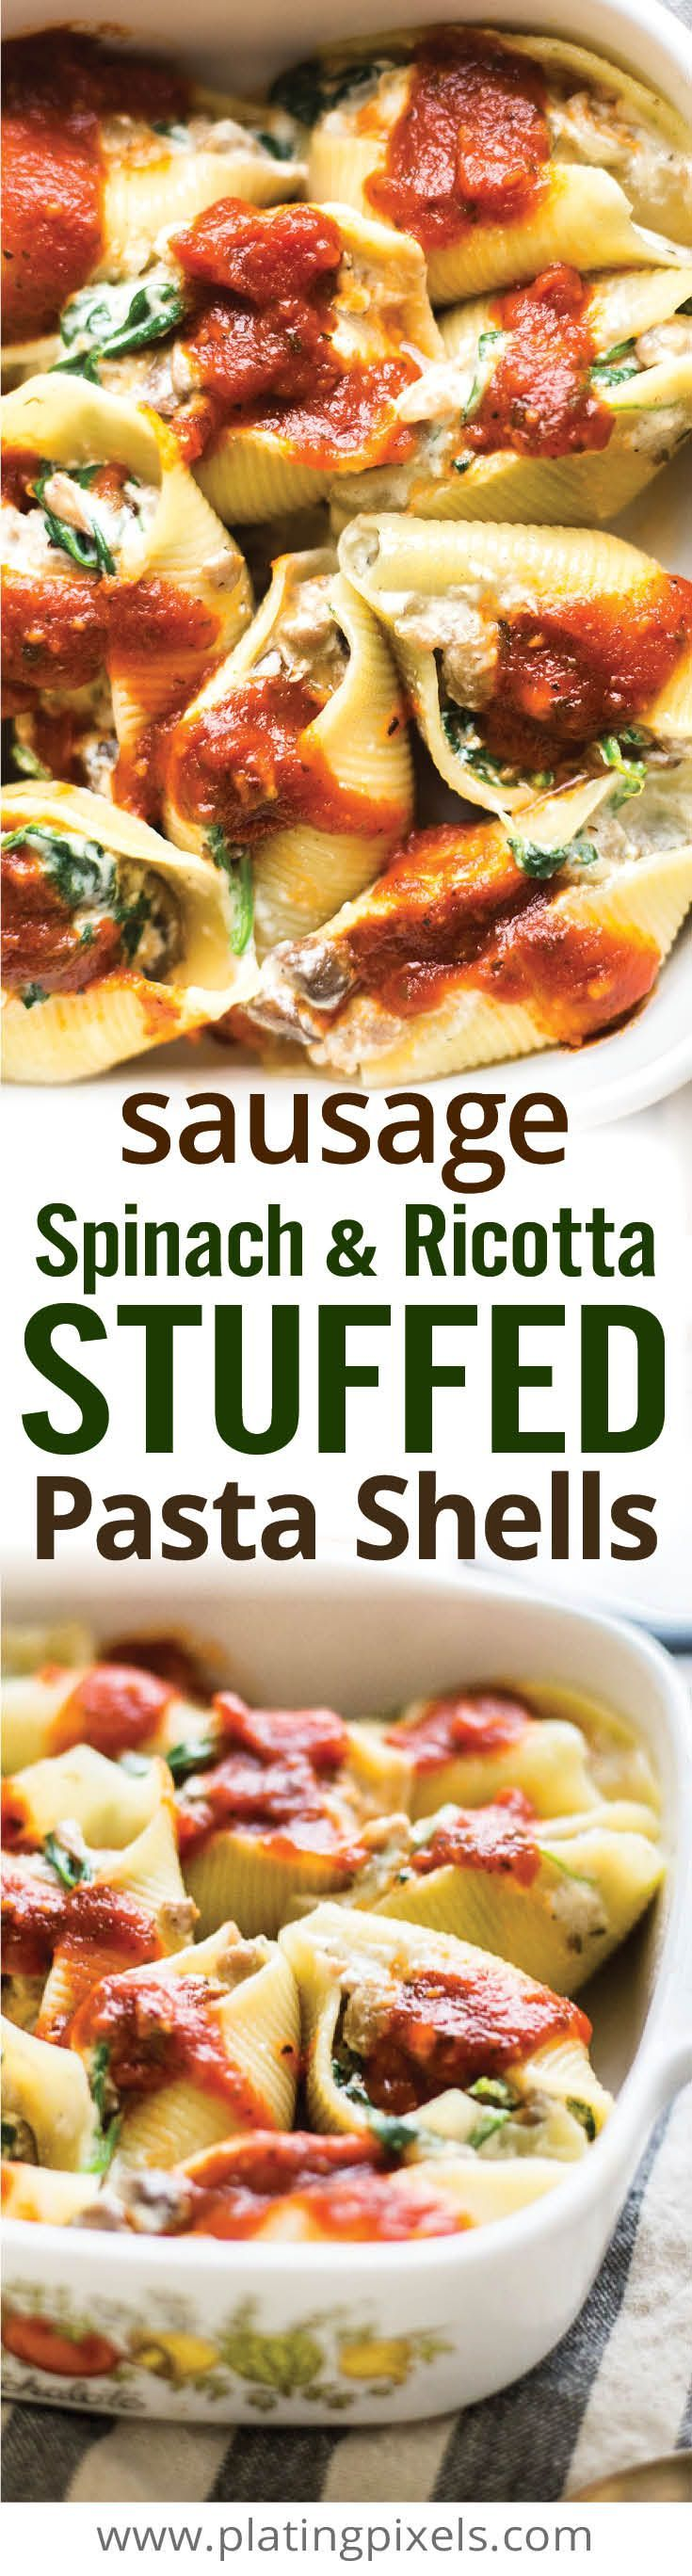 This authentic Italian stuffed pasta is perfect for feeding the entire family or for leftovers. Sausage, mushroom, spinach and ricotta stuffed pasta shells create a unique casserole full of flavor. [ad] #PremiumPrep - http://www.platingpixels.com